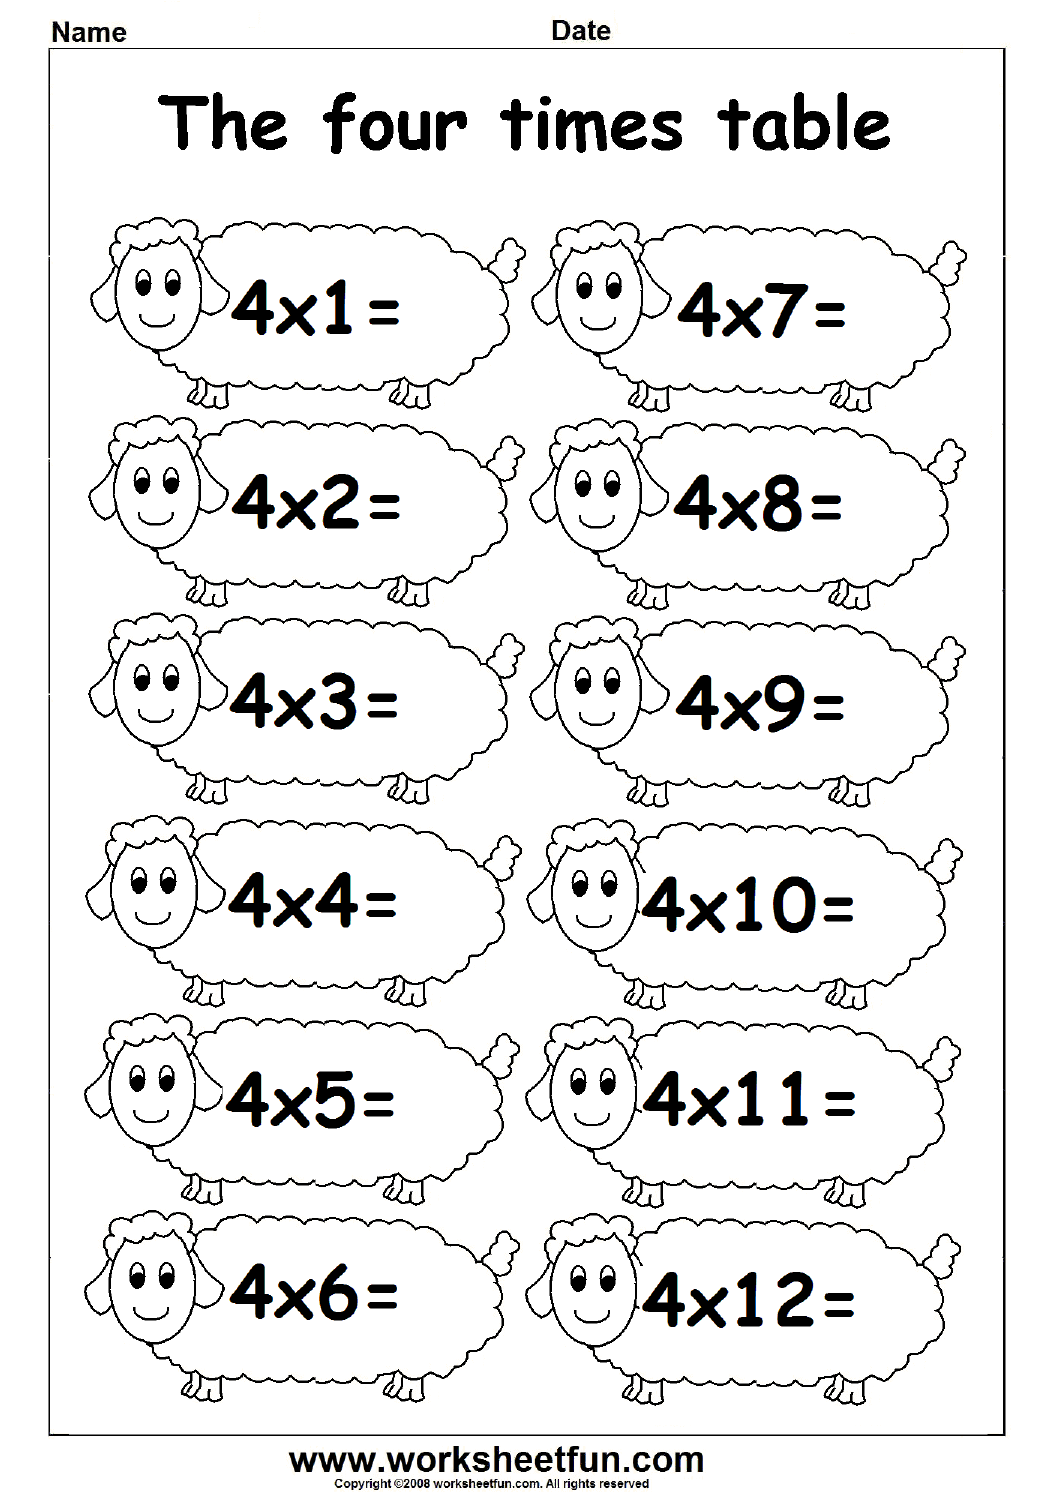 math worksheet : 1000 images about times tables on pinterest  times tables times  : Multiplication Tables Practice Worksheets